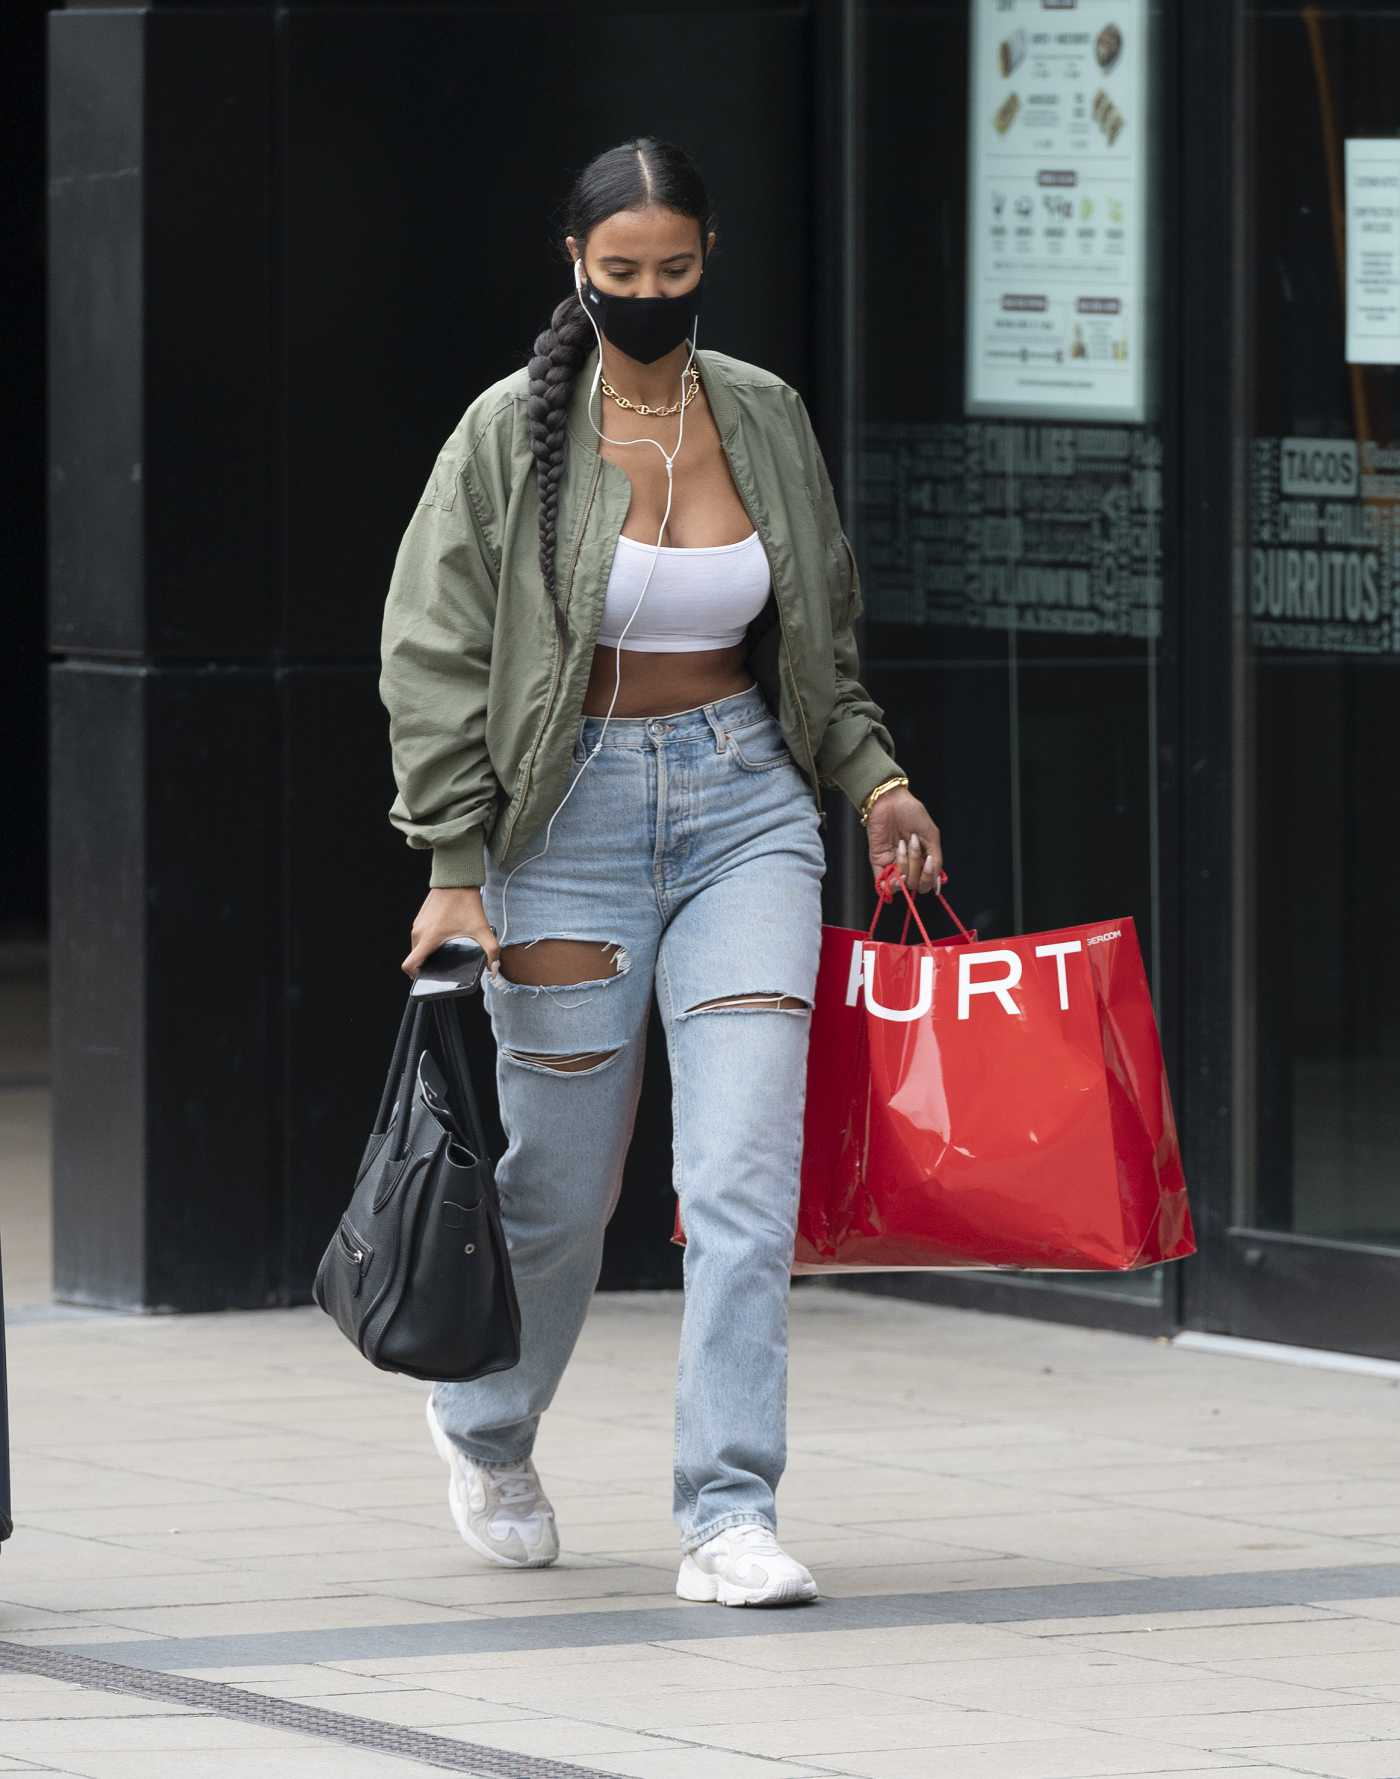 Maya Jama in a Blue Ripped Jeans Was Seen Out in London 09/07/2020